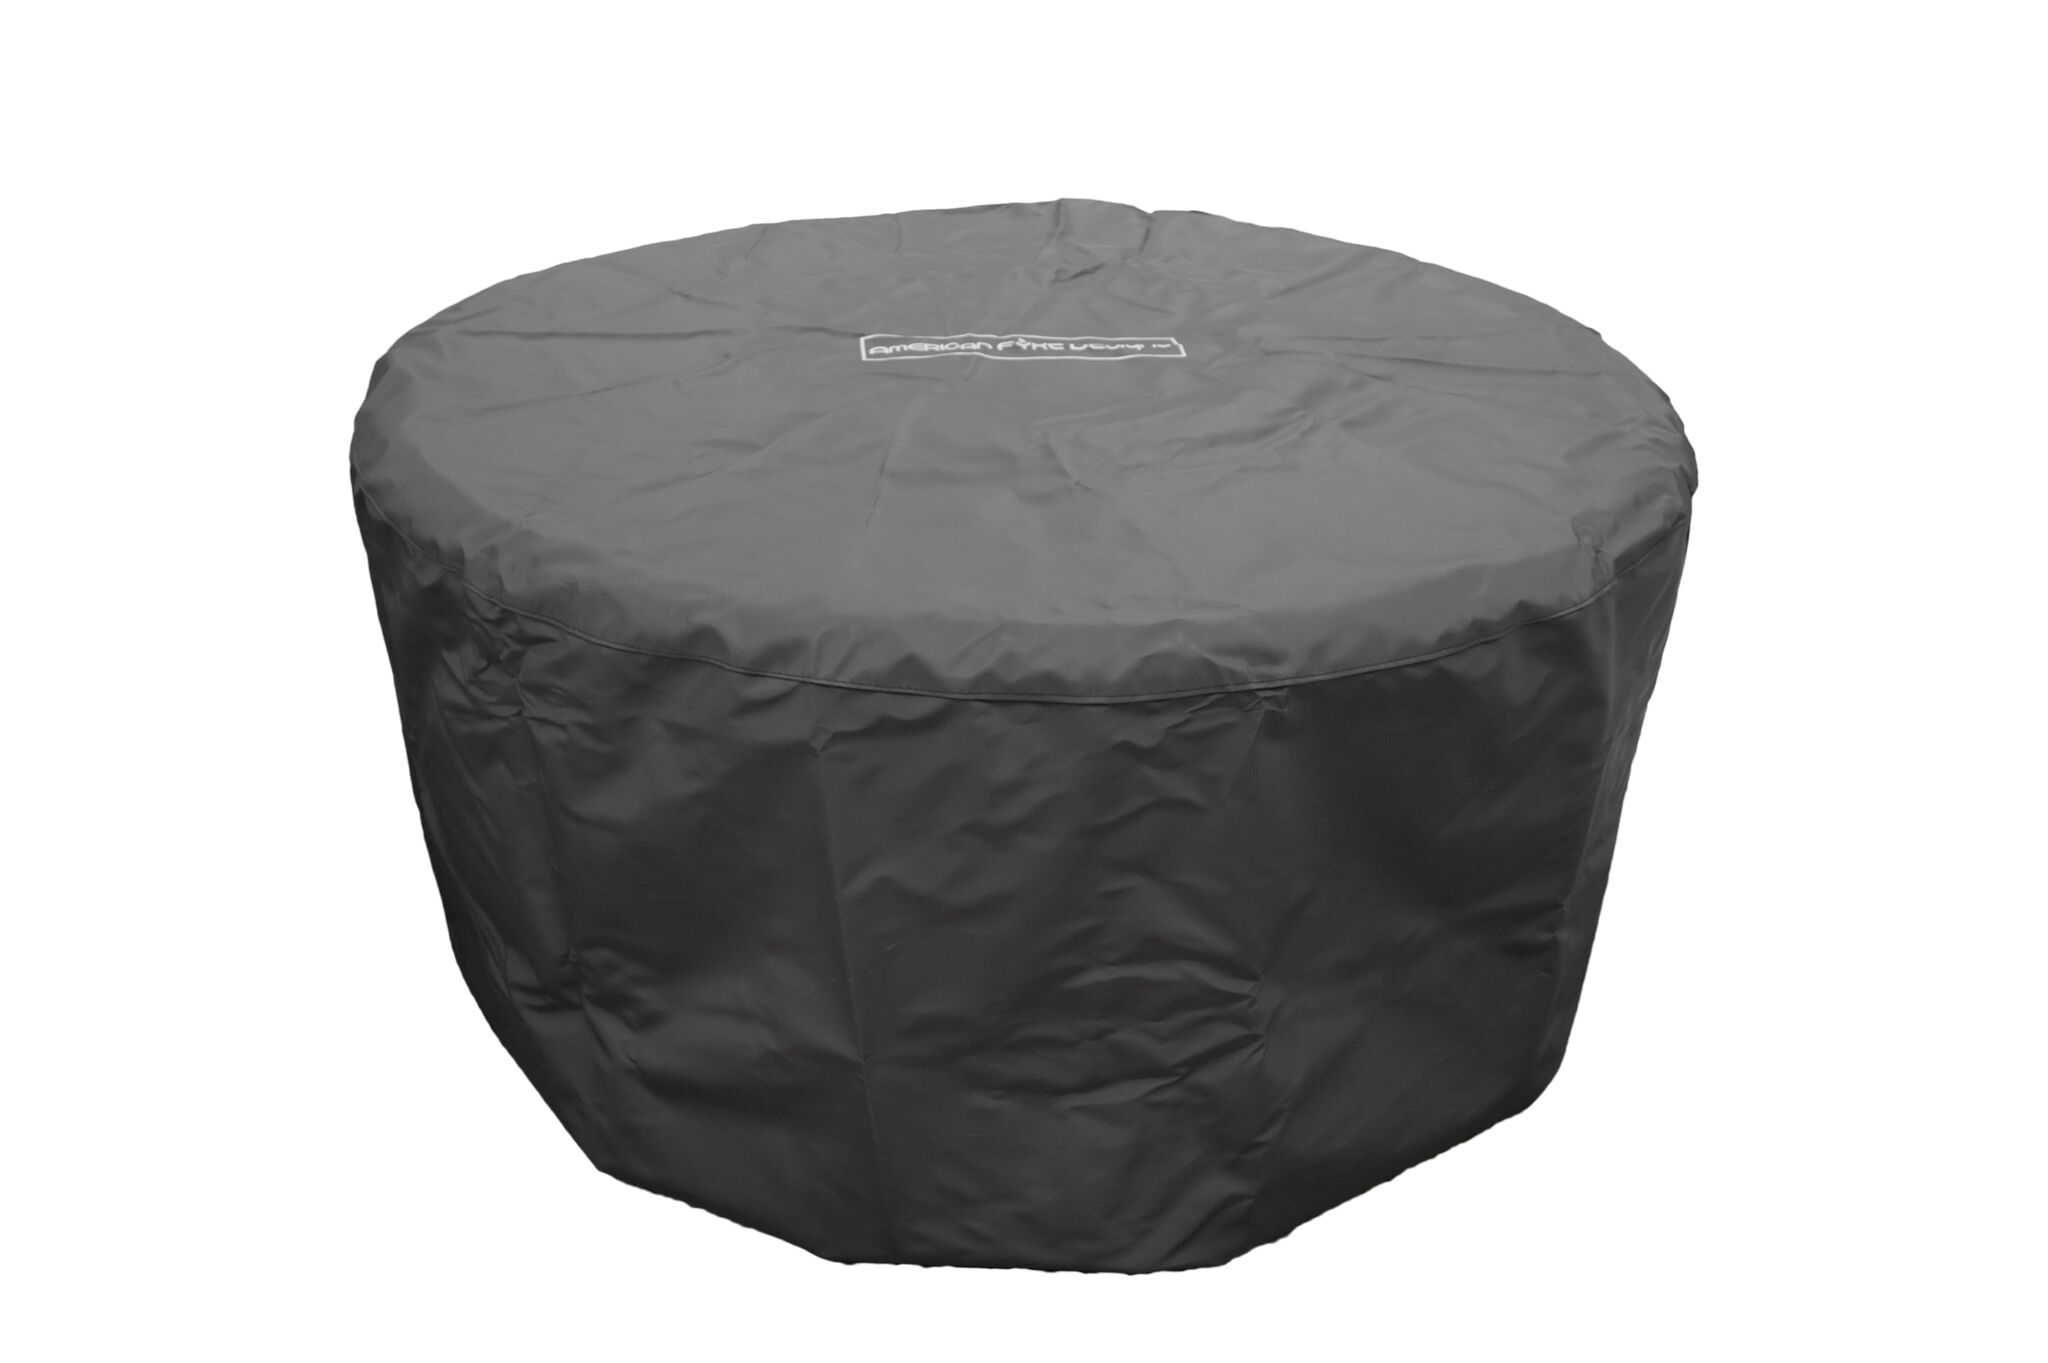 Fire Bowl Cover Option